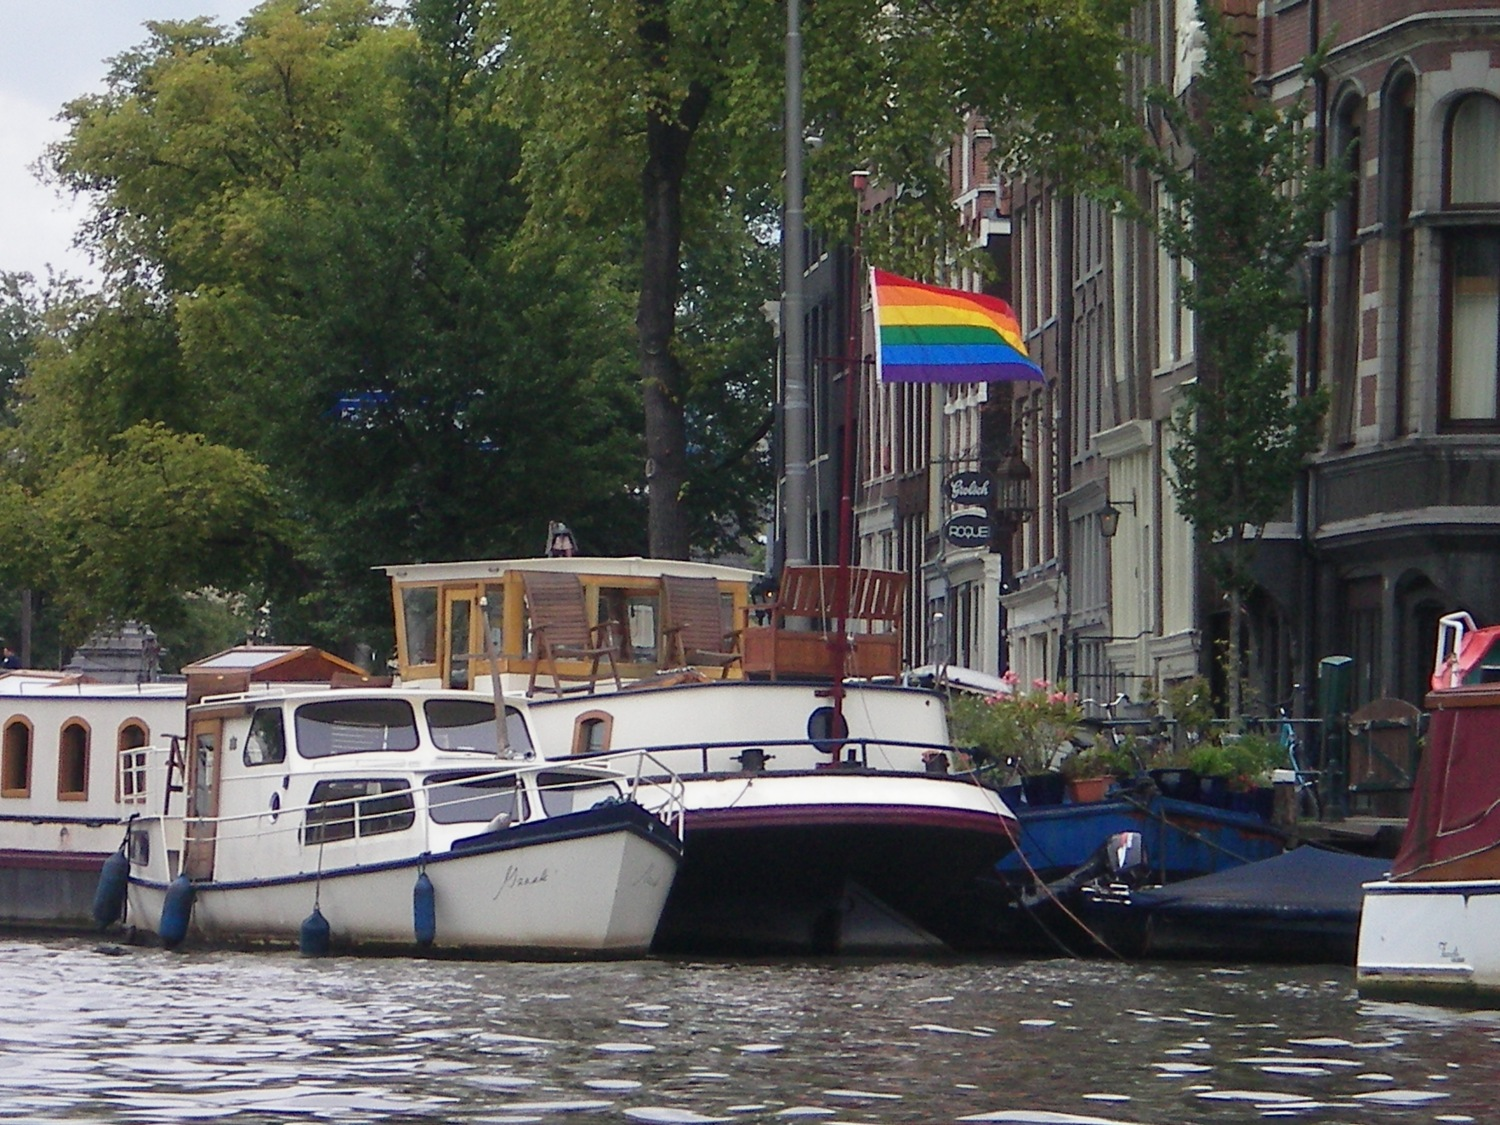 Rainbow flag flies high in Amsterdam